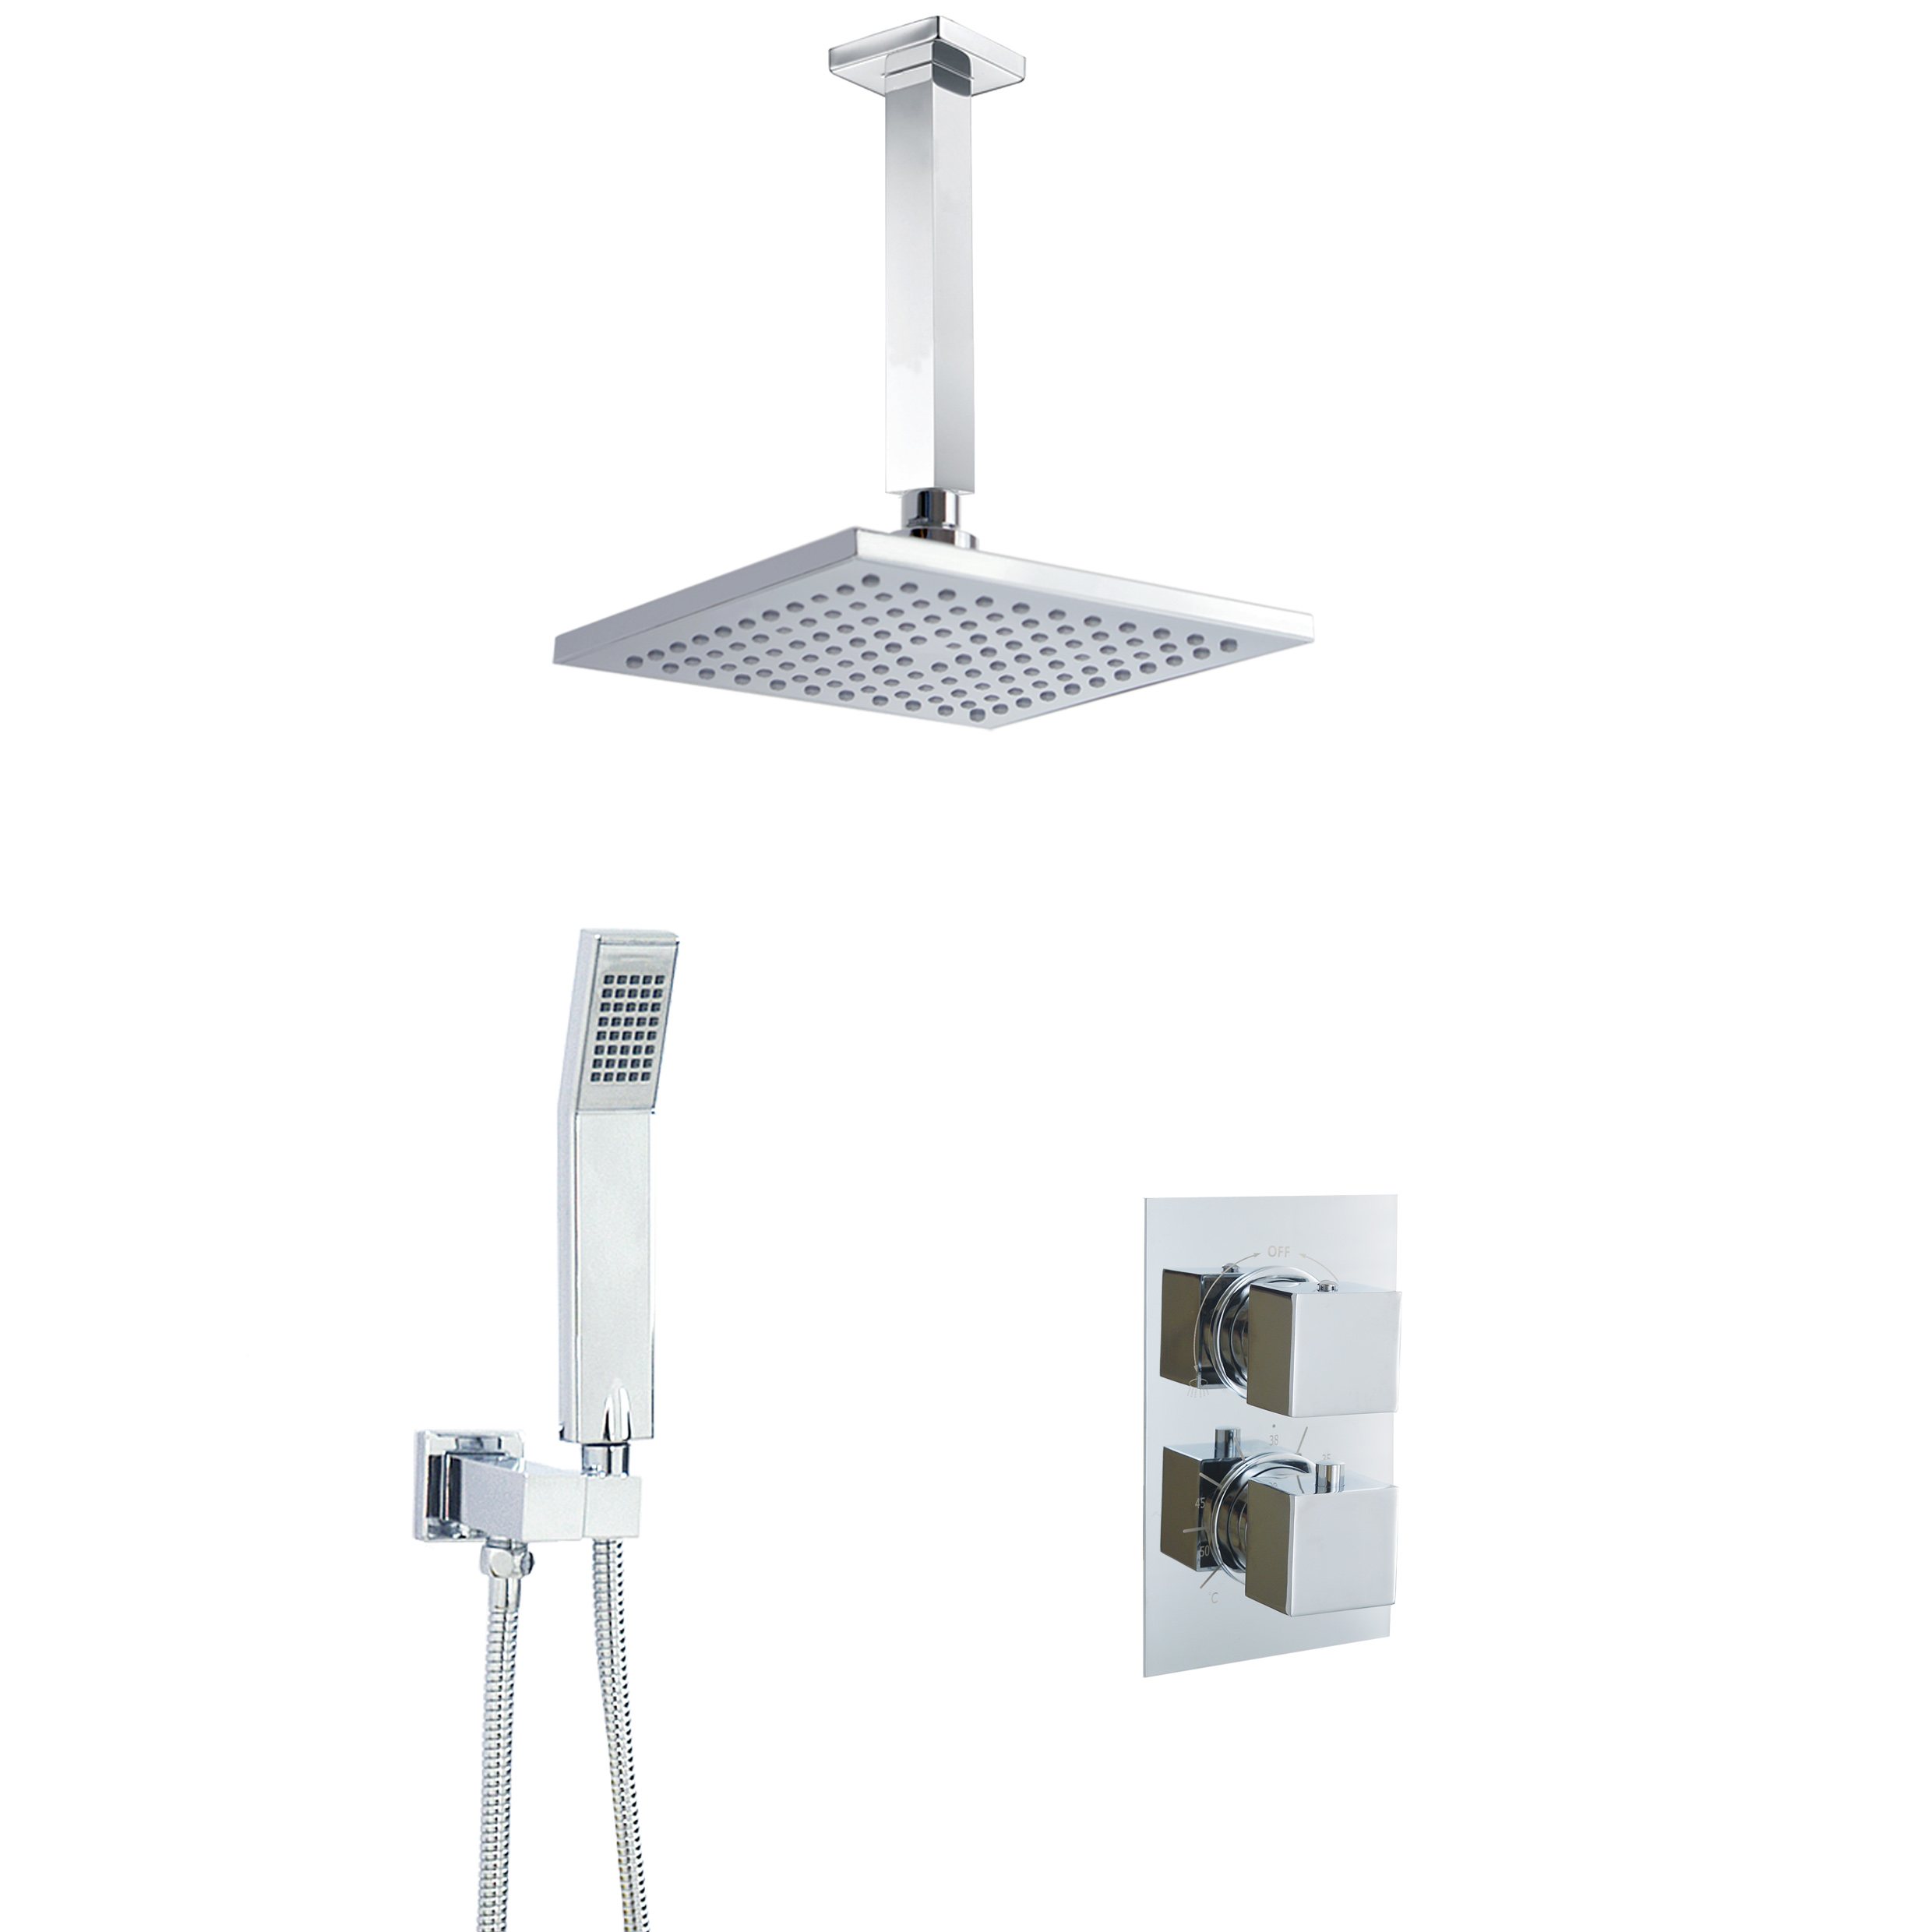 Details About Square Shower Overhead Set Bathroom Kit Concealed 2 Way Thermostatic Mixer Valve